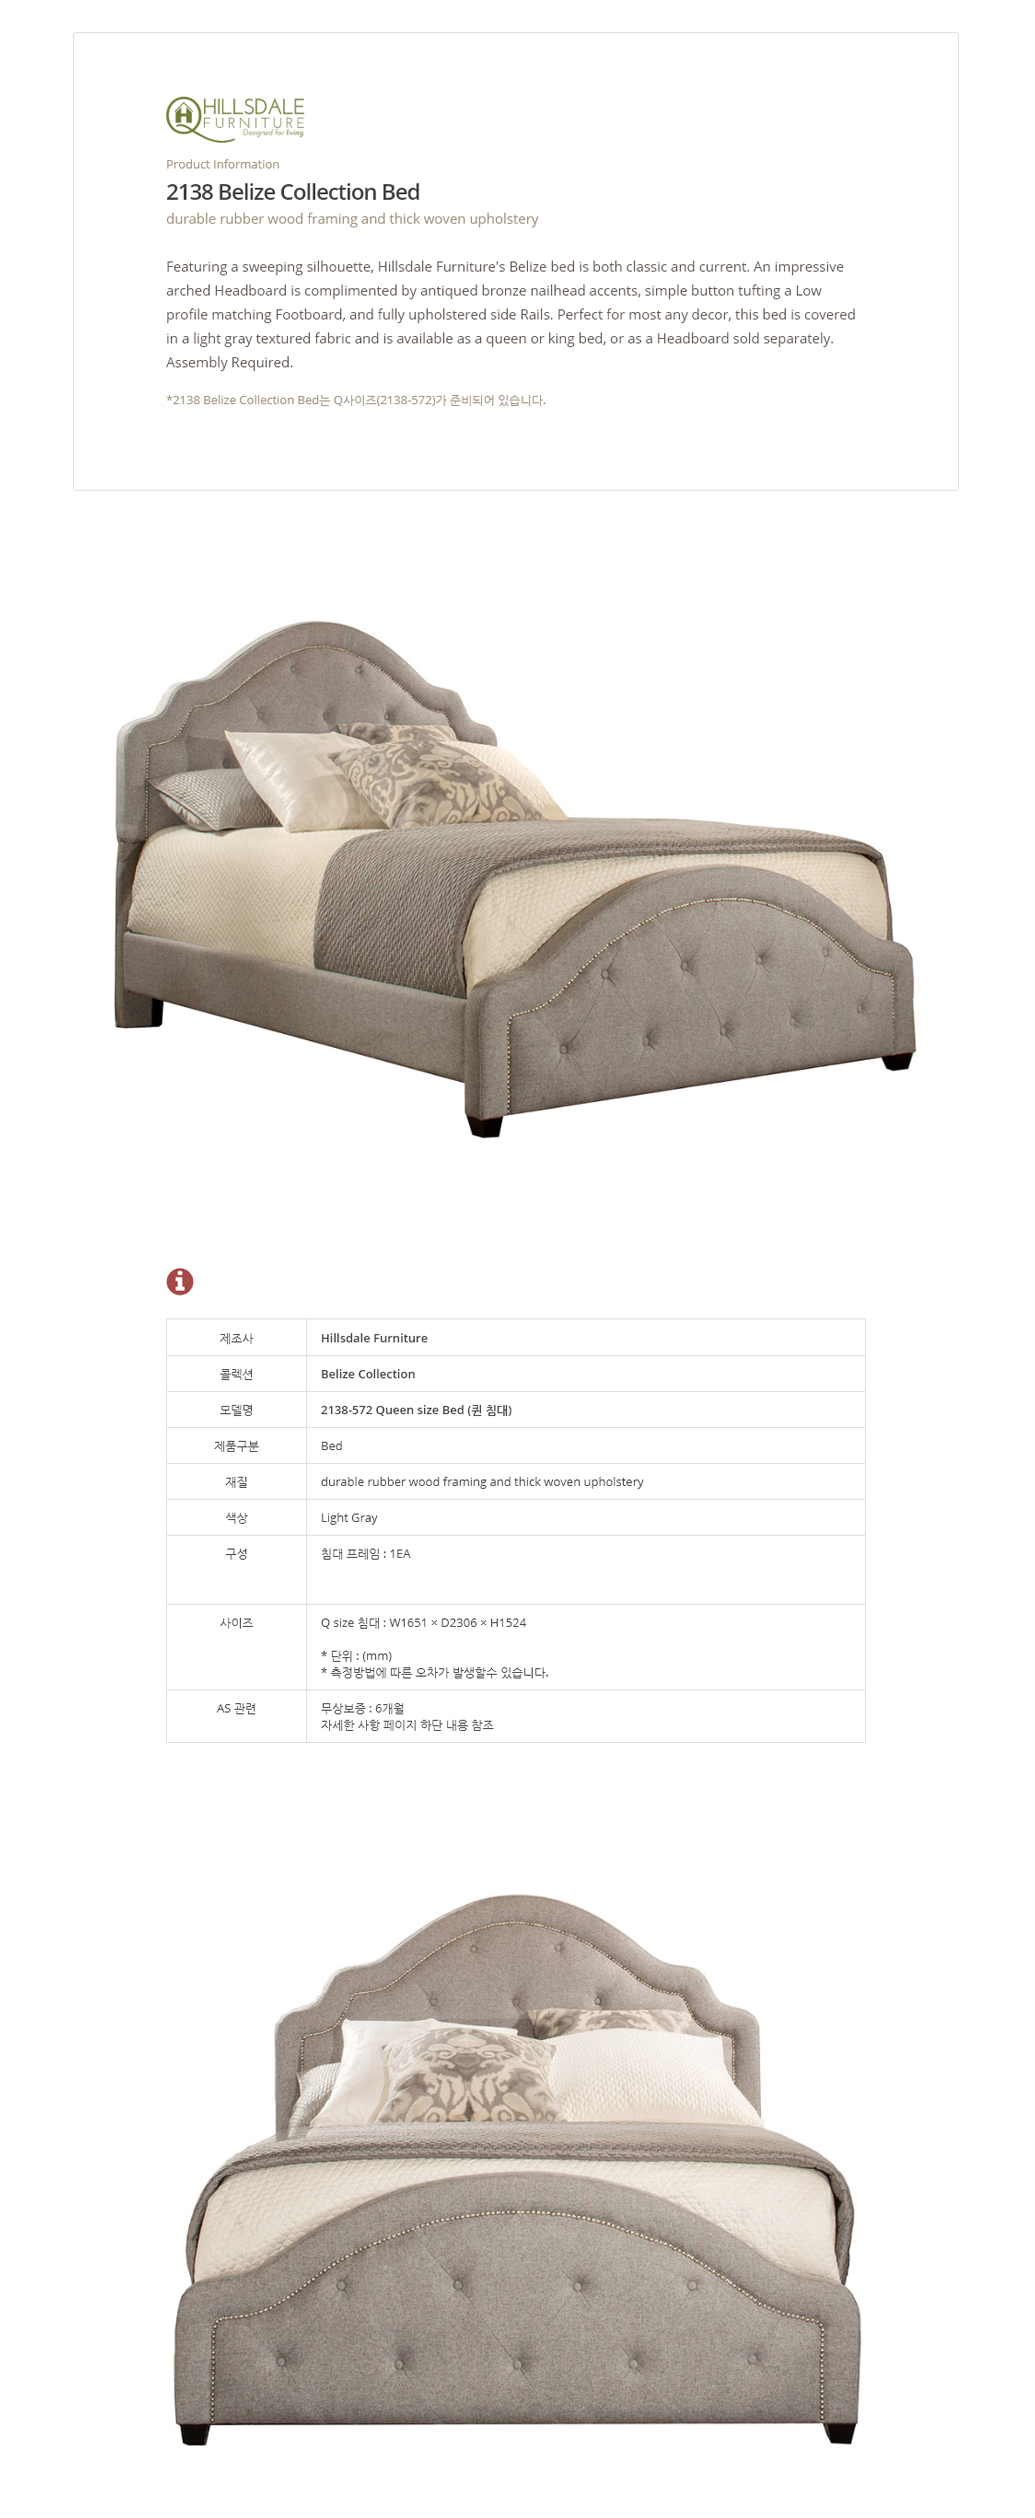 2138_belize_collection_bed_01.jpg